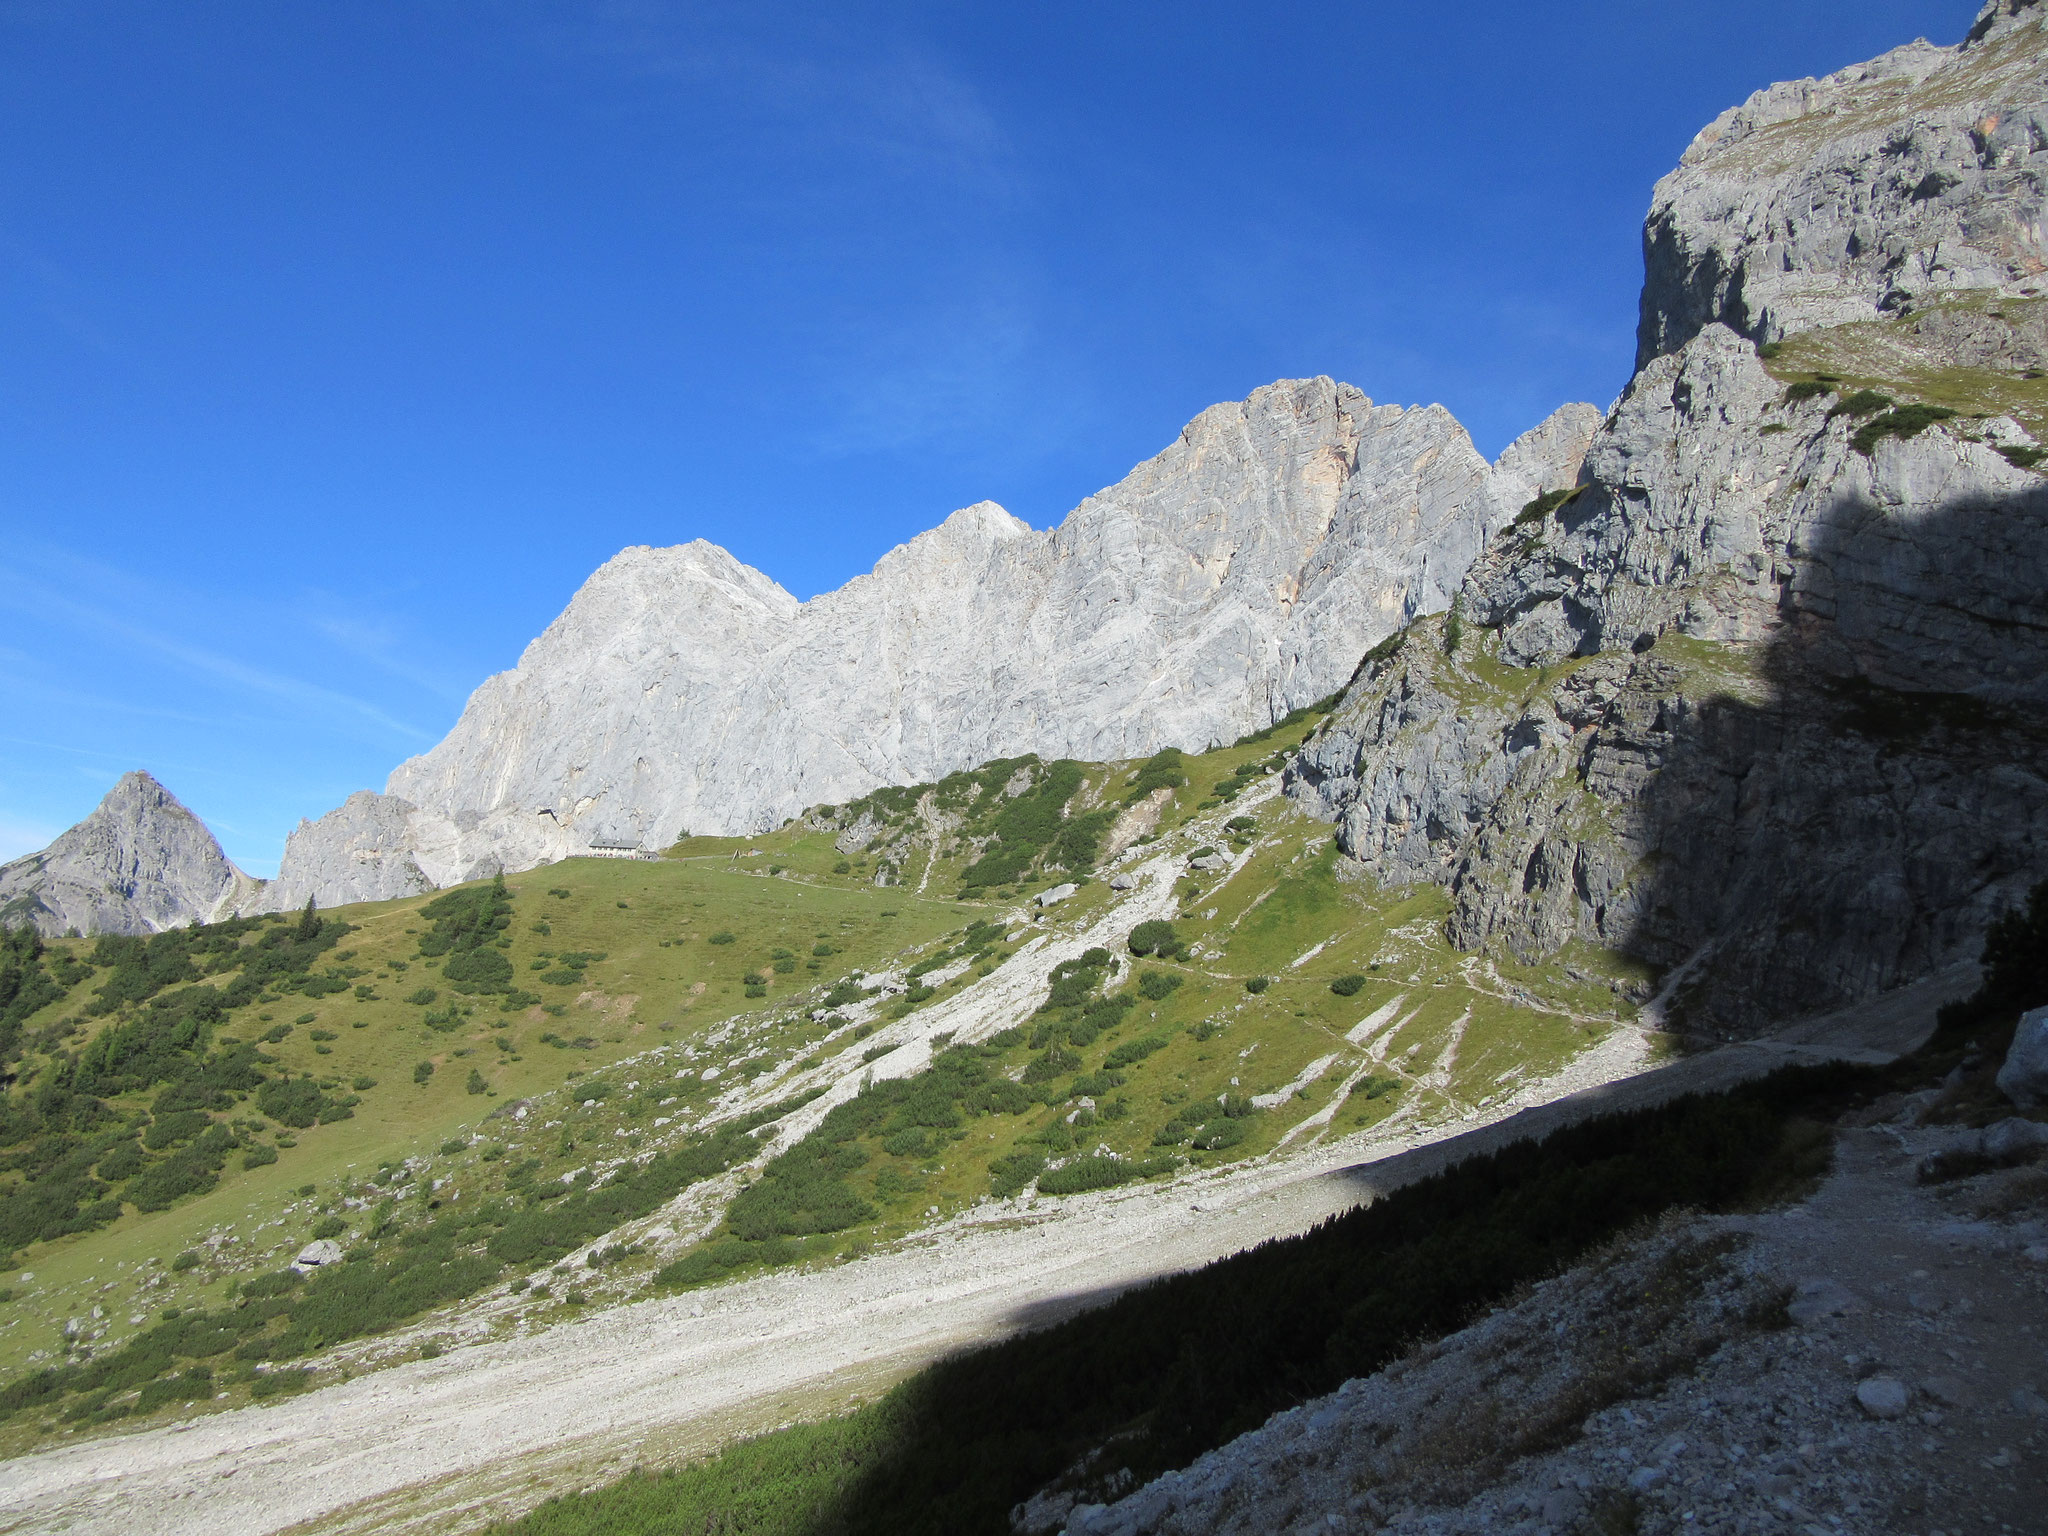 The three peaks: Torstein, Mitterspitz and Hoher Dachstein